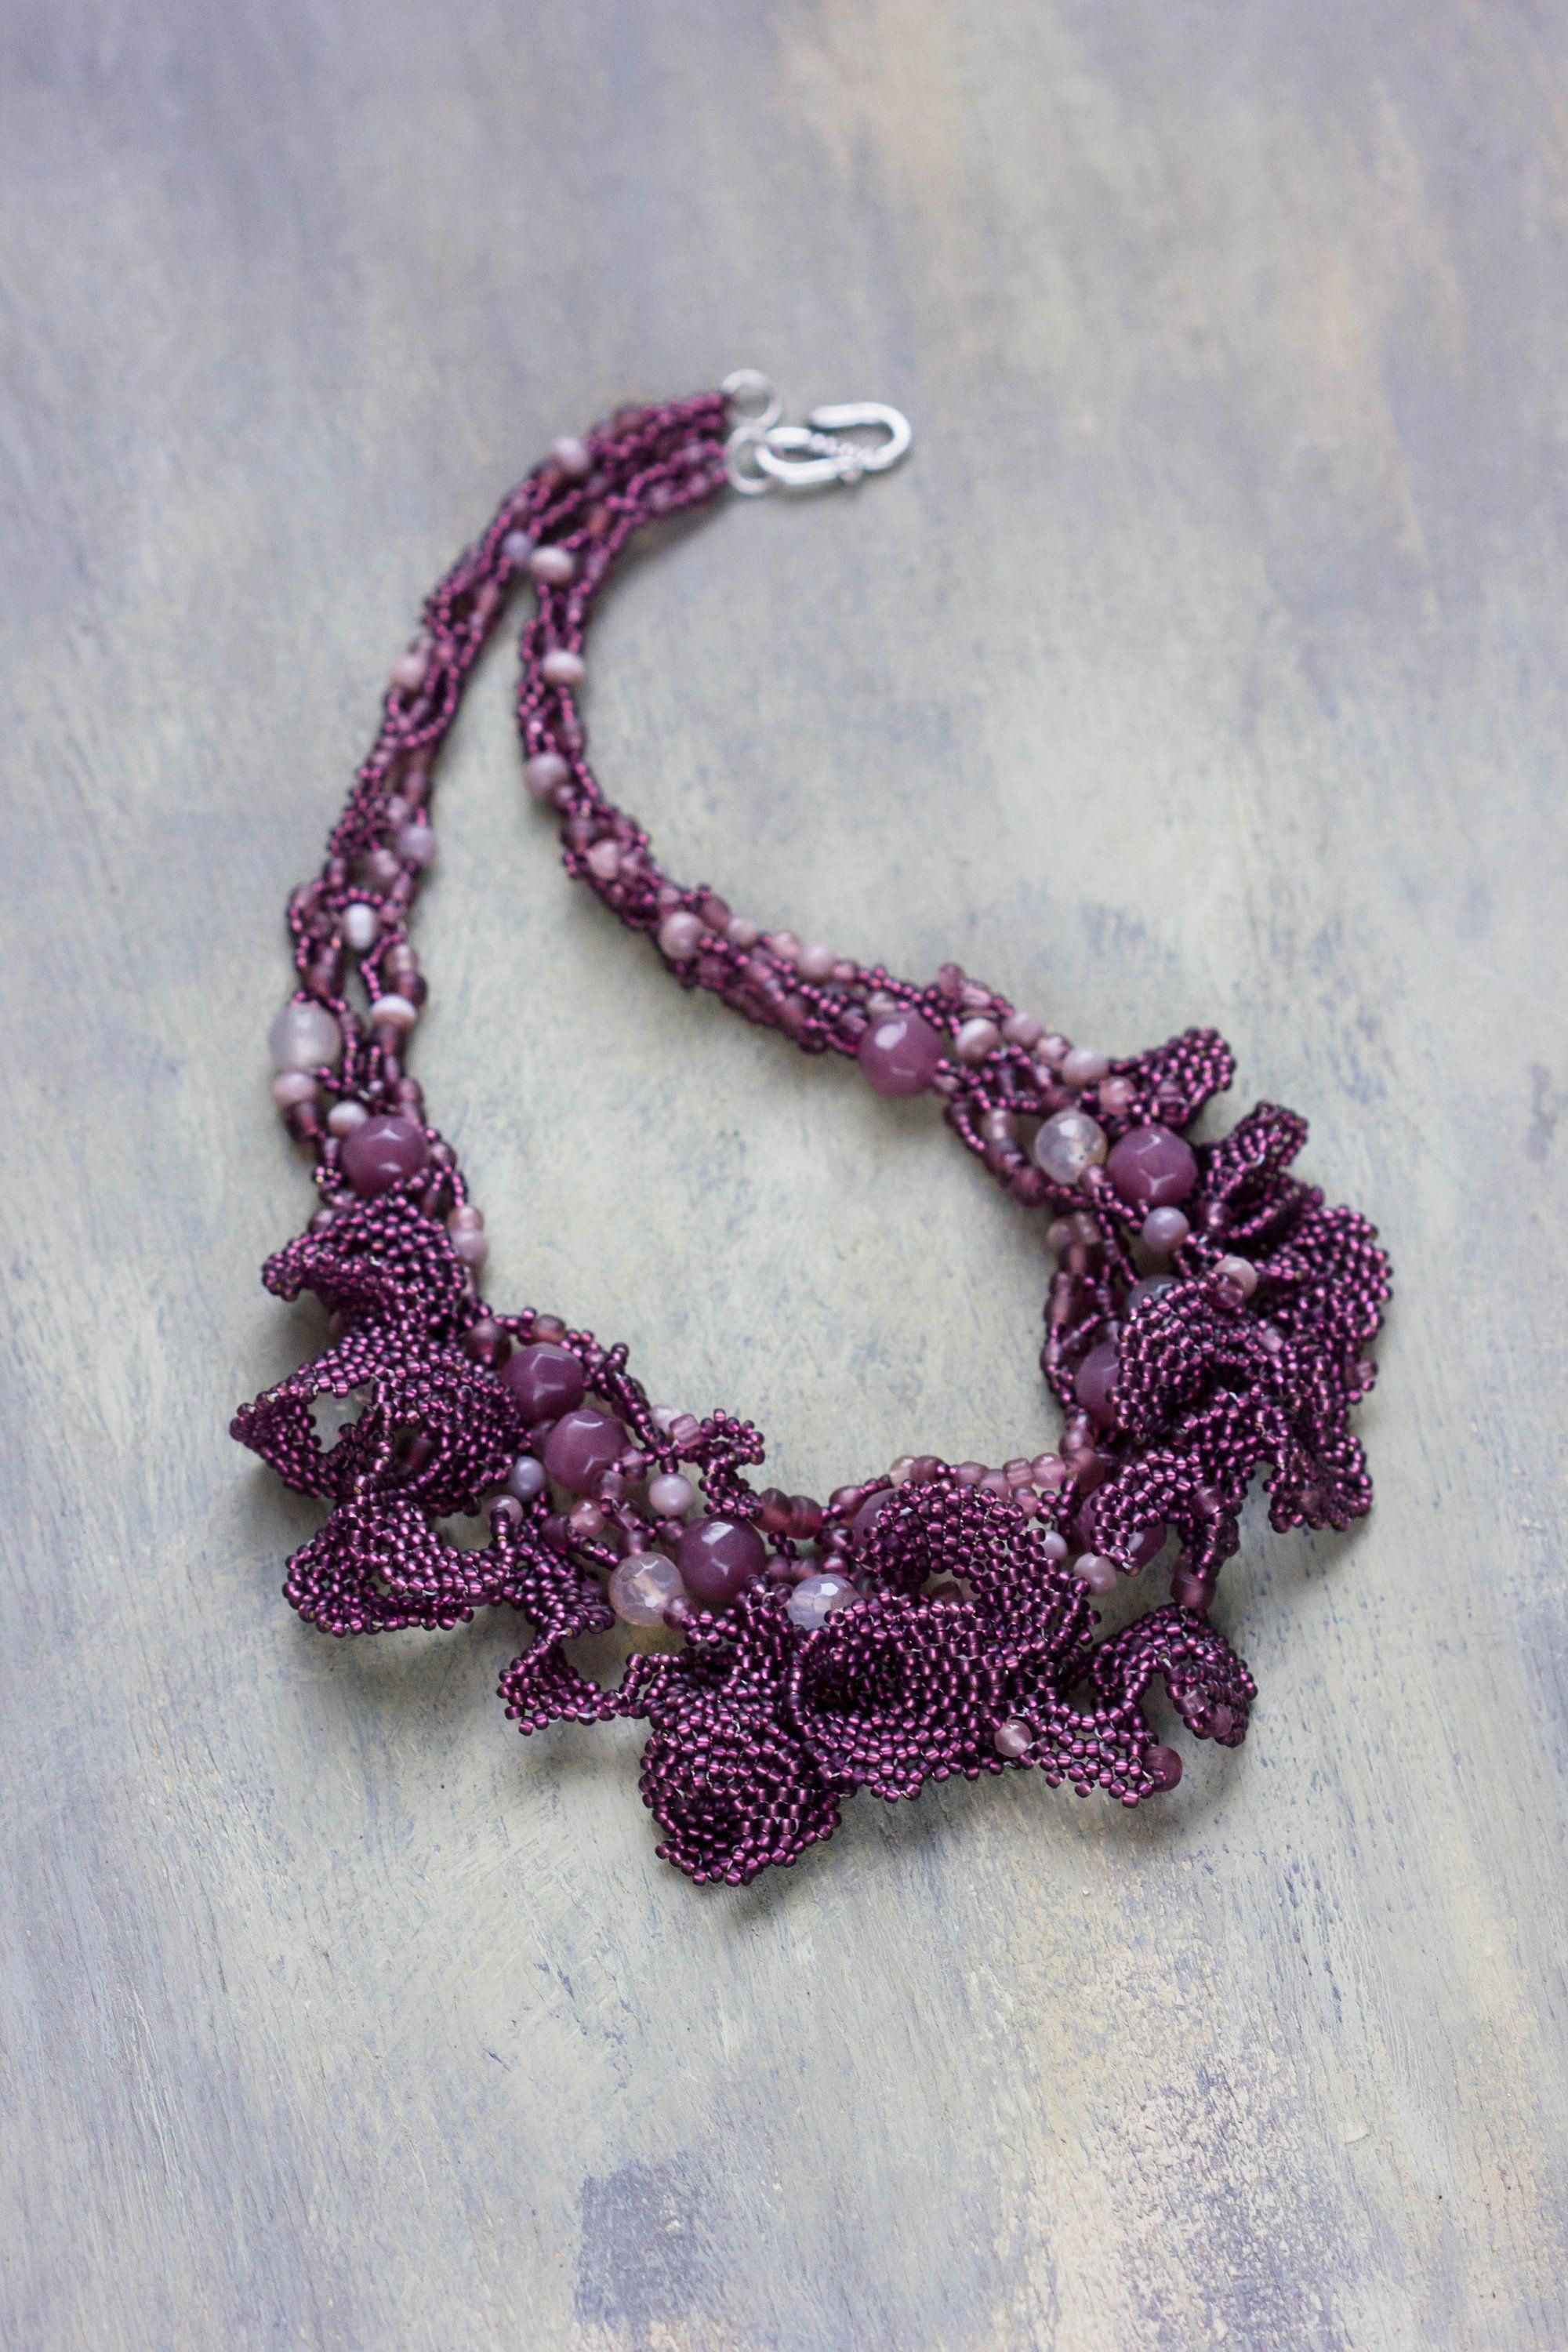 Beadwork Necklace Bead weave Necklace Gift Oglala Necklace Seed Bead Necklace Purple Necklace Beaded Statement Necklace Lace Necklace